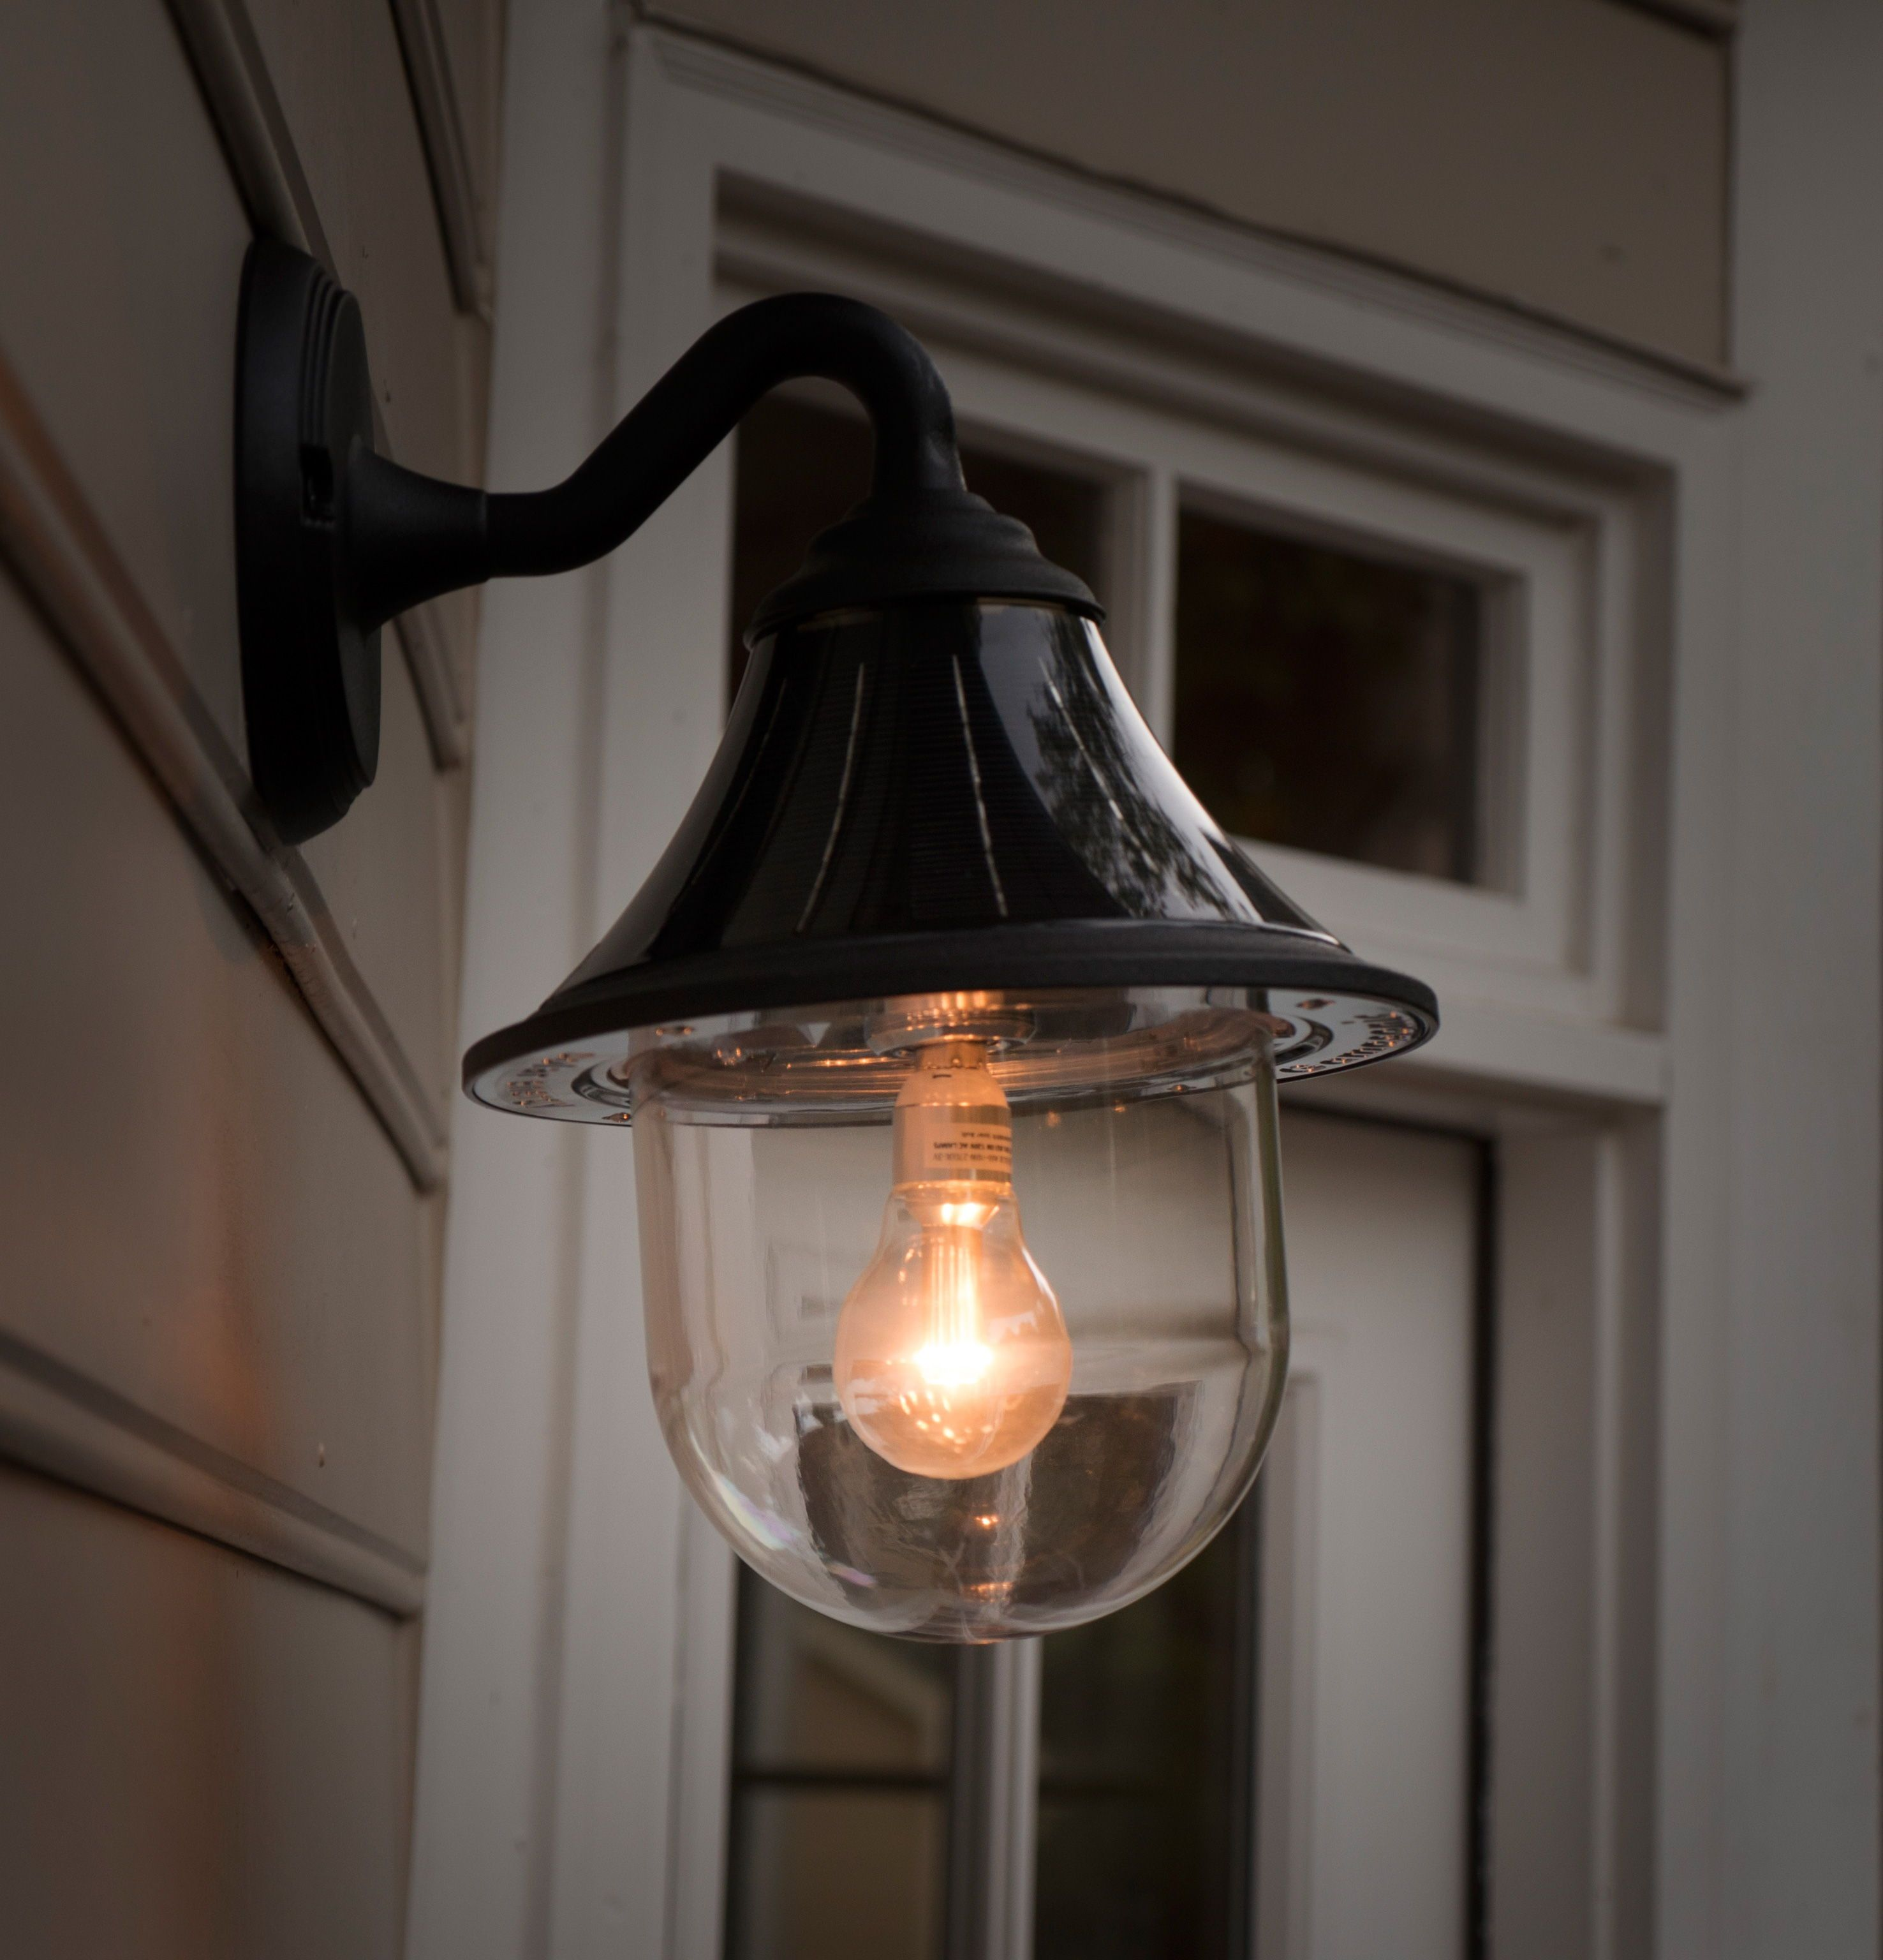 medium resolution of perfect for home and garden diy specialists looking to upgrade their exterior outdoor lighting no electrical wiring required